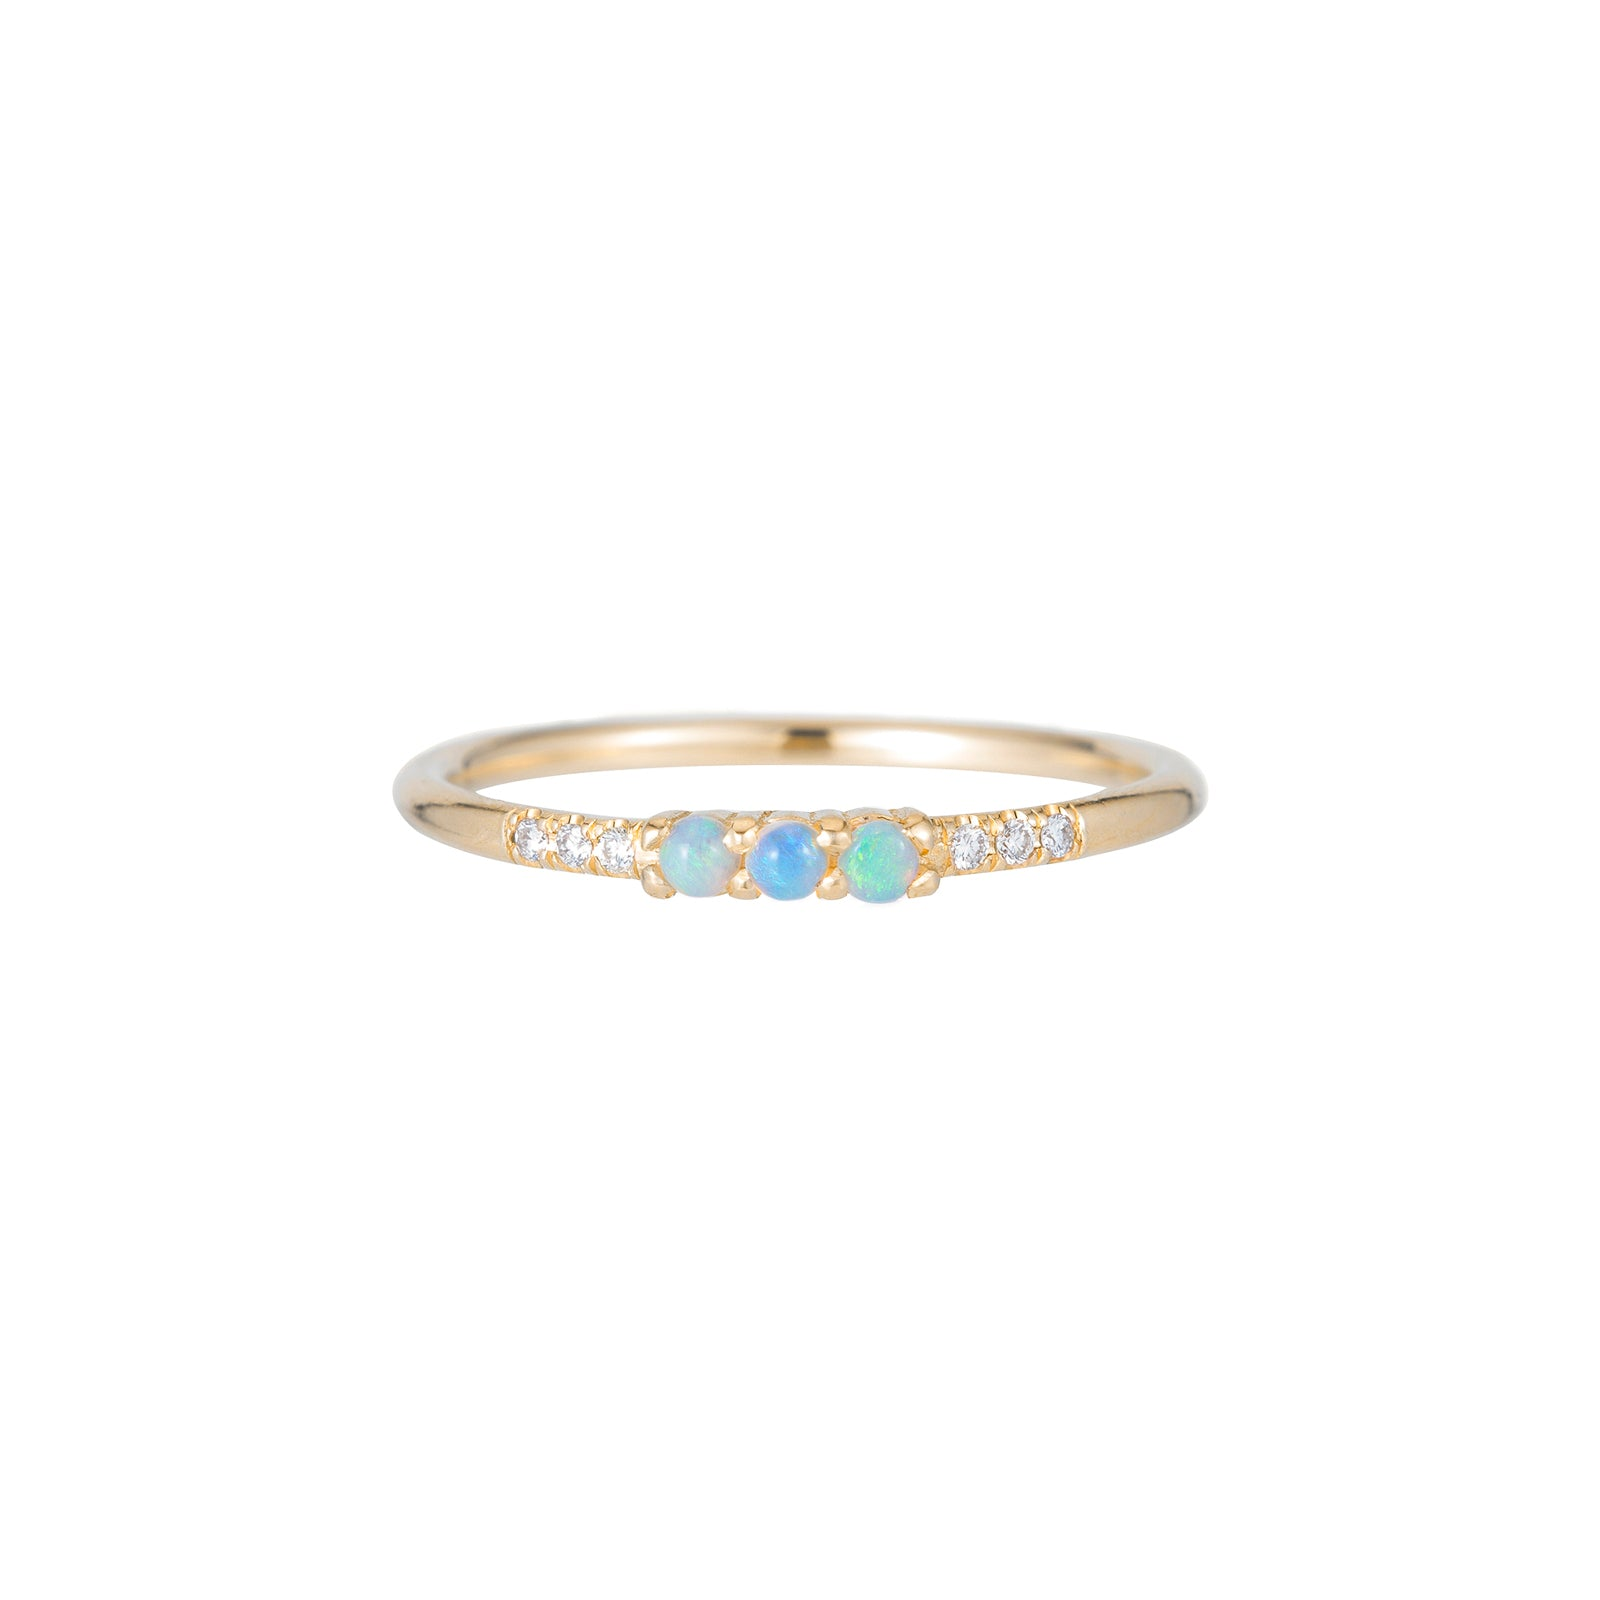 Jennie Kwon Equilibrium Trio Ring - Opal - Rings - Broken English Jewelry